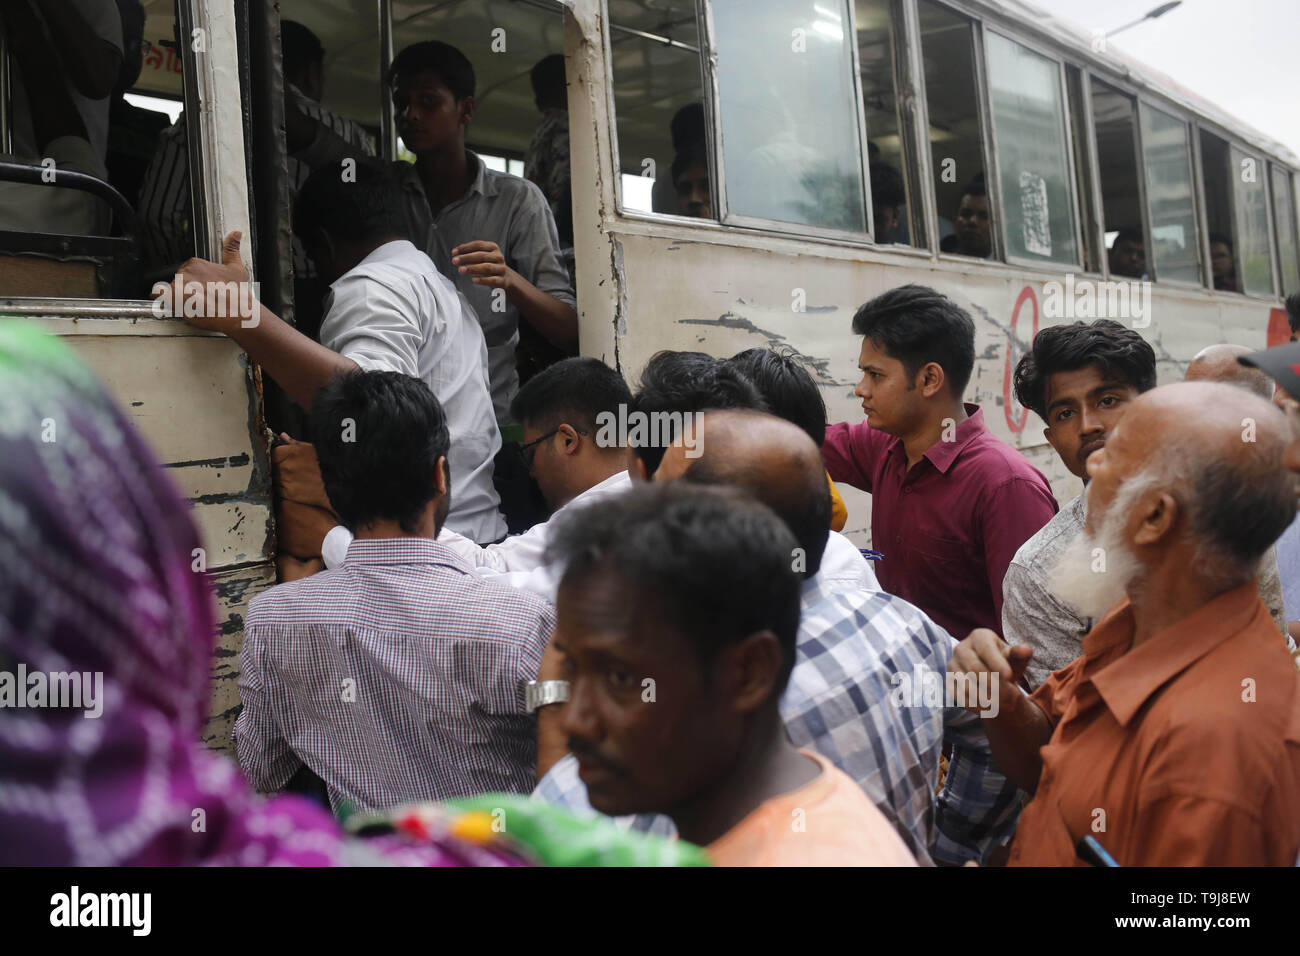 May 19, 2019 - Dhaka, Bangladesh - Commuters busy to inter in a public transport on a rush hour during Ramadan in Dhaka. Passenger transport service is very incomprehensible for commuters in the capital. (Credit Image: © MD Mehedi Hasan/ZUMA Wire) Stock Photo